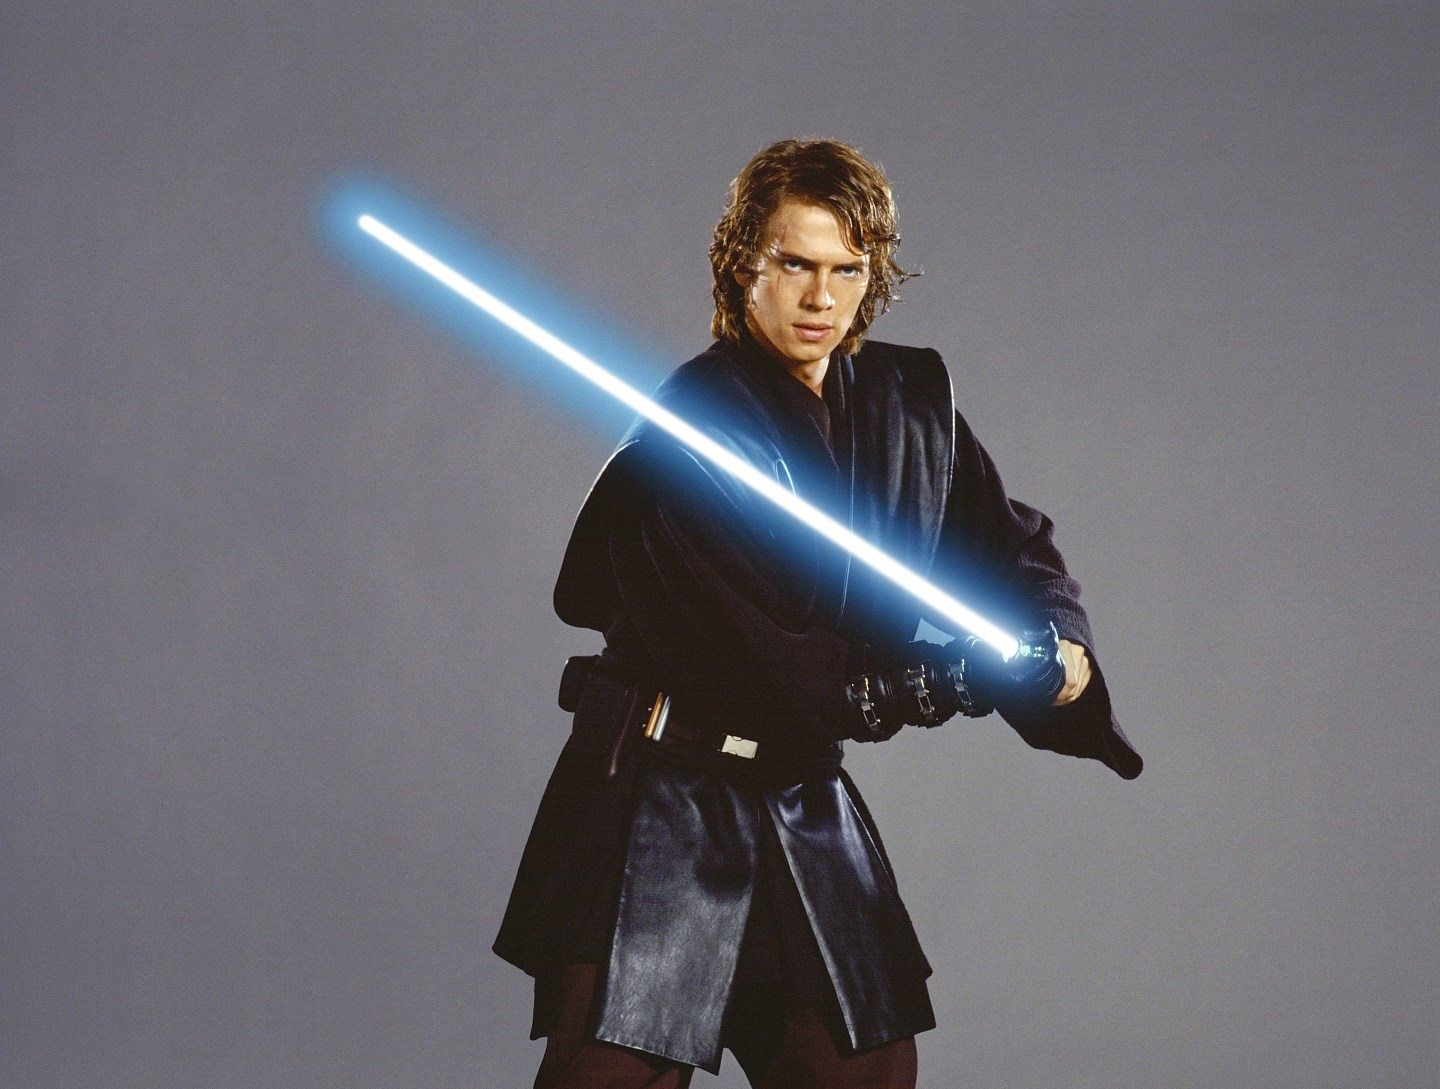 episode iii - anakin skywalker | star wars | lightsaber